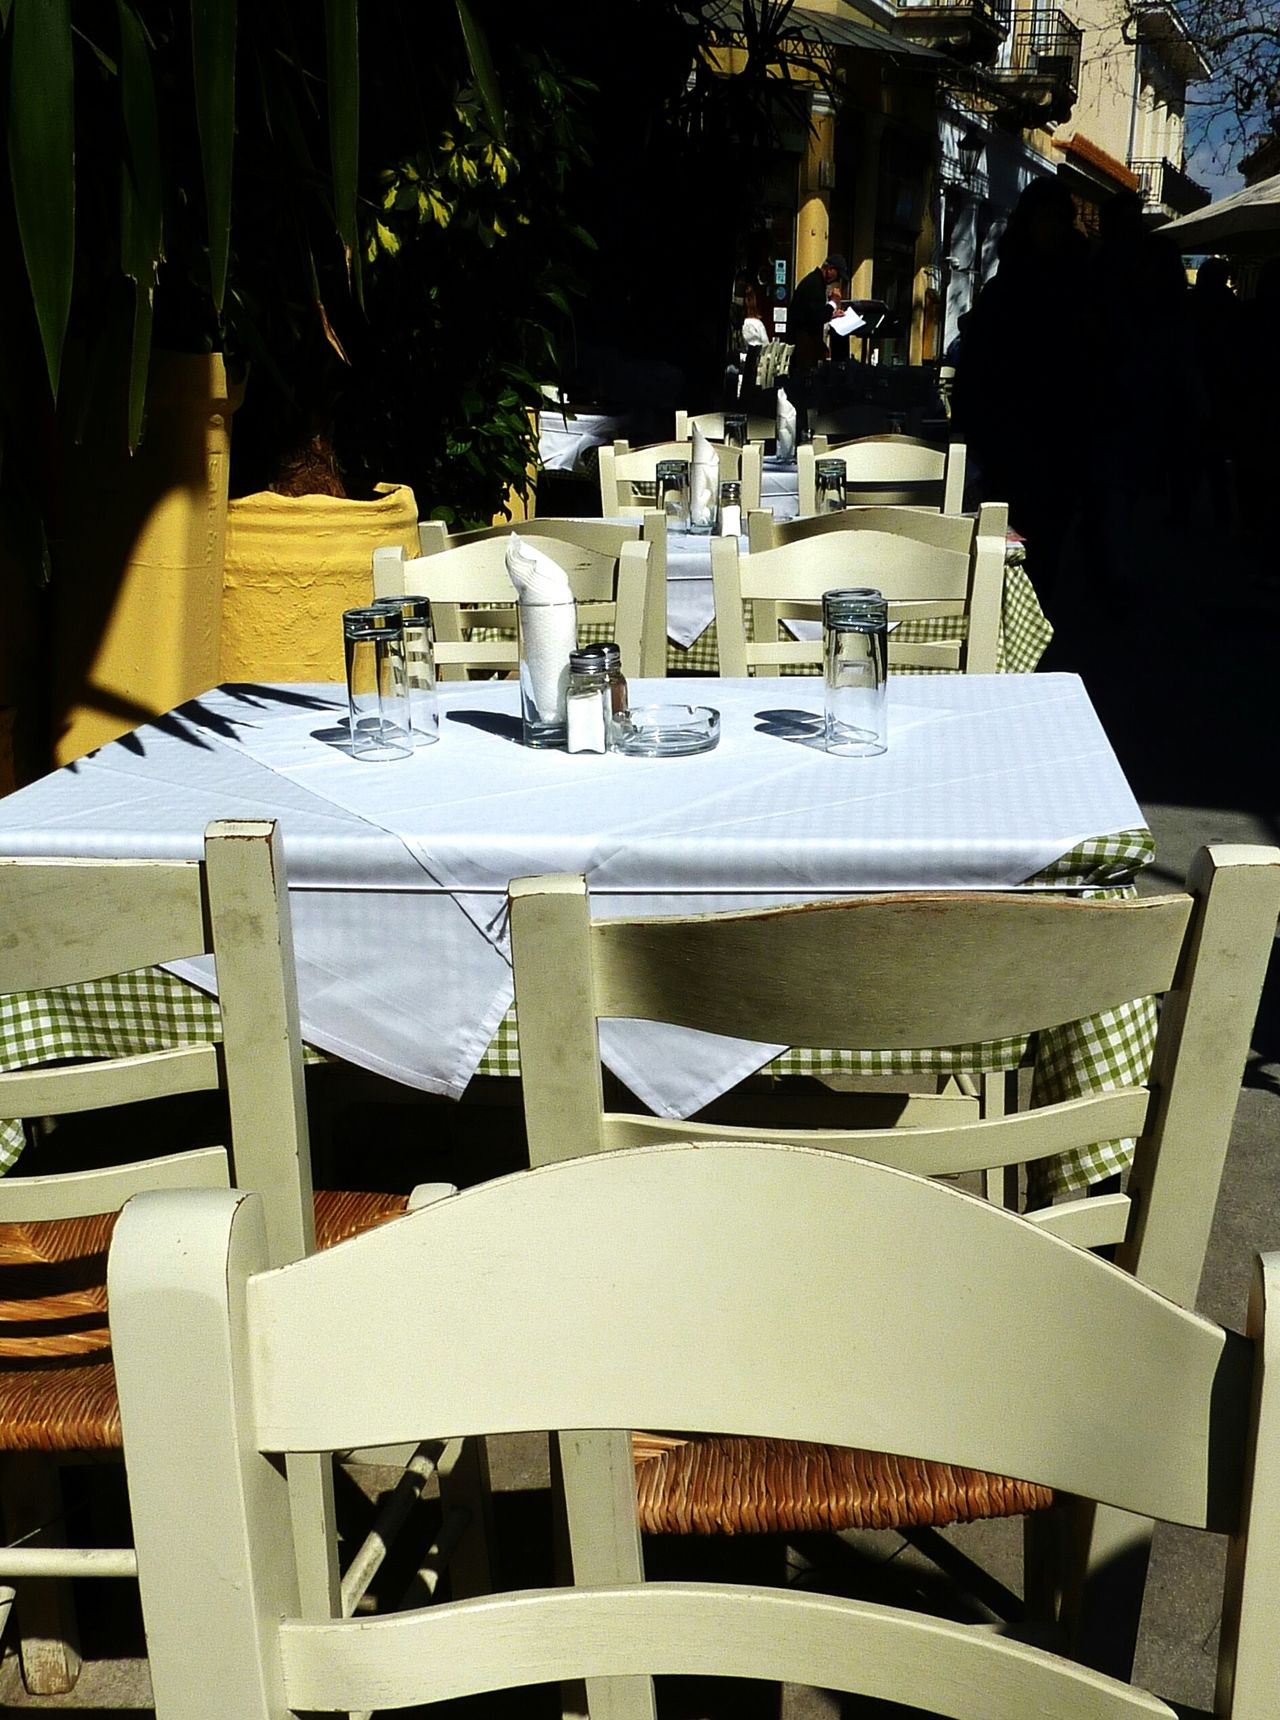 You are welcome EyeEm Gallery Street Photography Restaurant Greece Mediteranean Restaurant Scene Restaurants Plates On A Table White Meal Mealtime Dishes Tourists Sunny Day Outdoor Cafe Outdoor Restaurant Ambiente